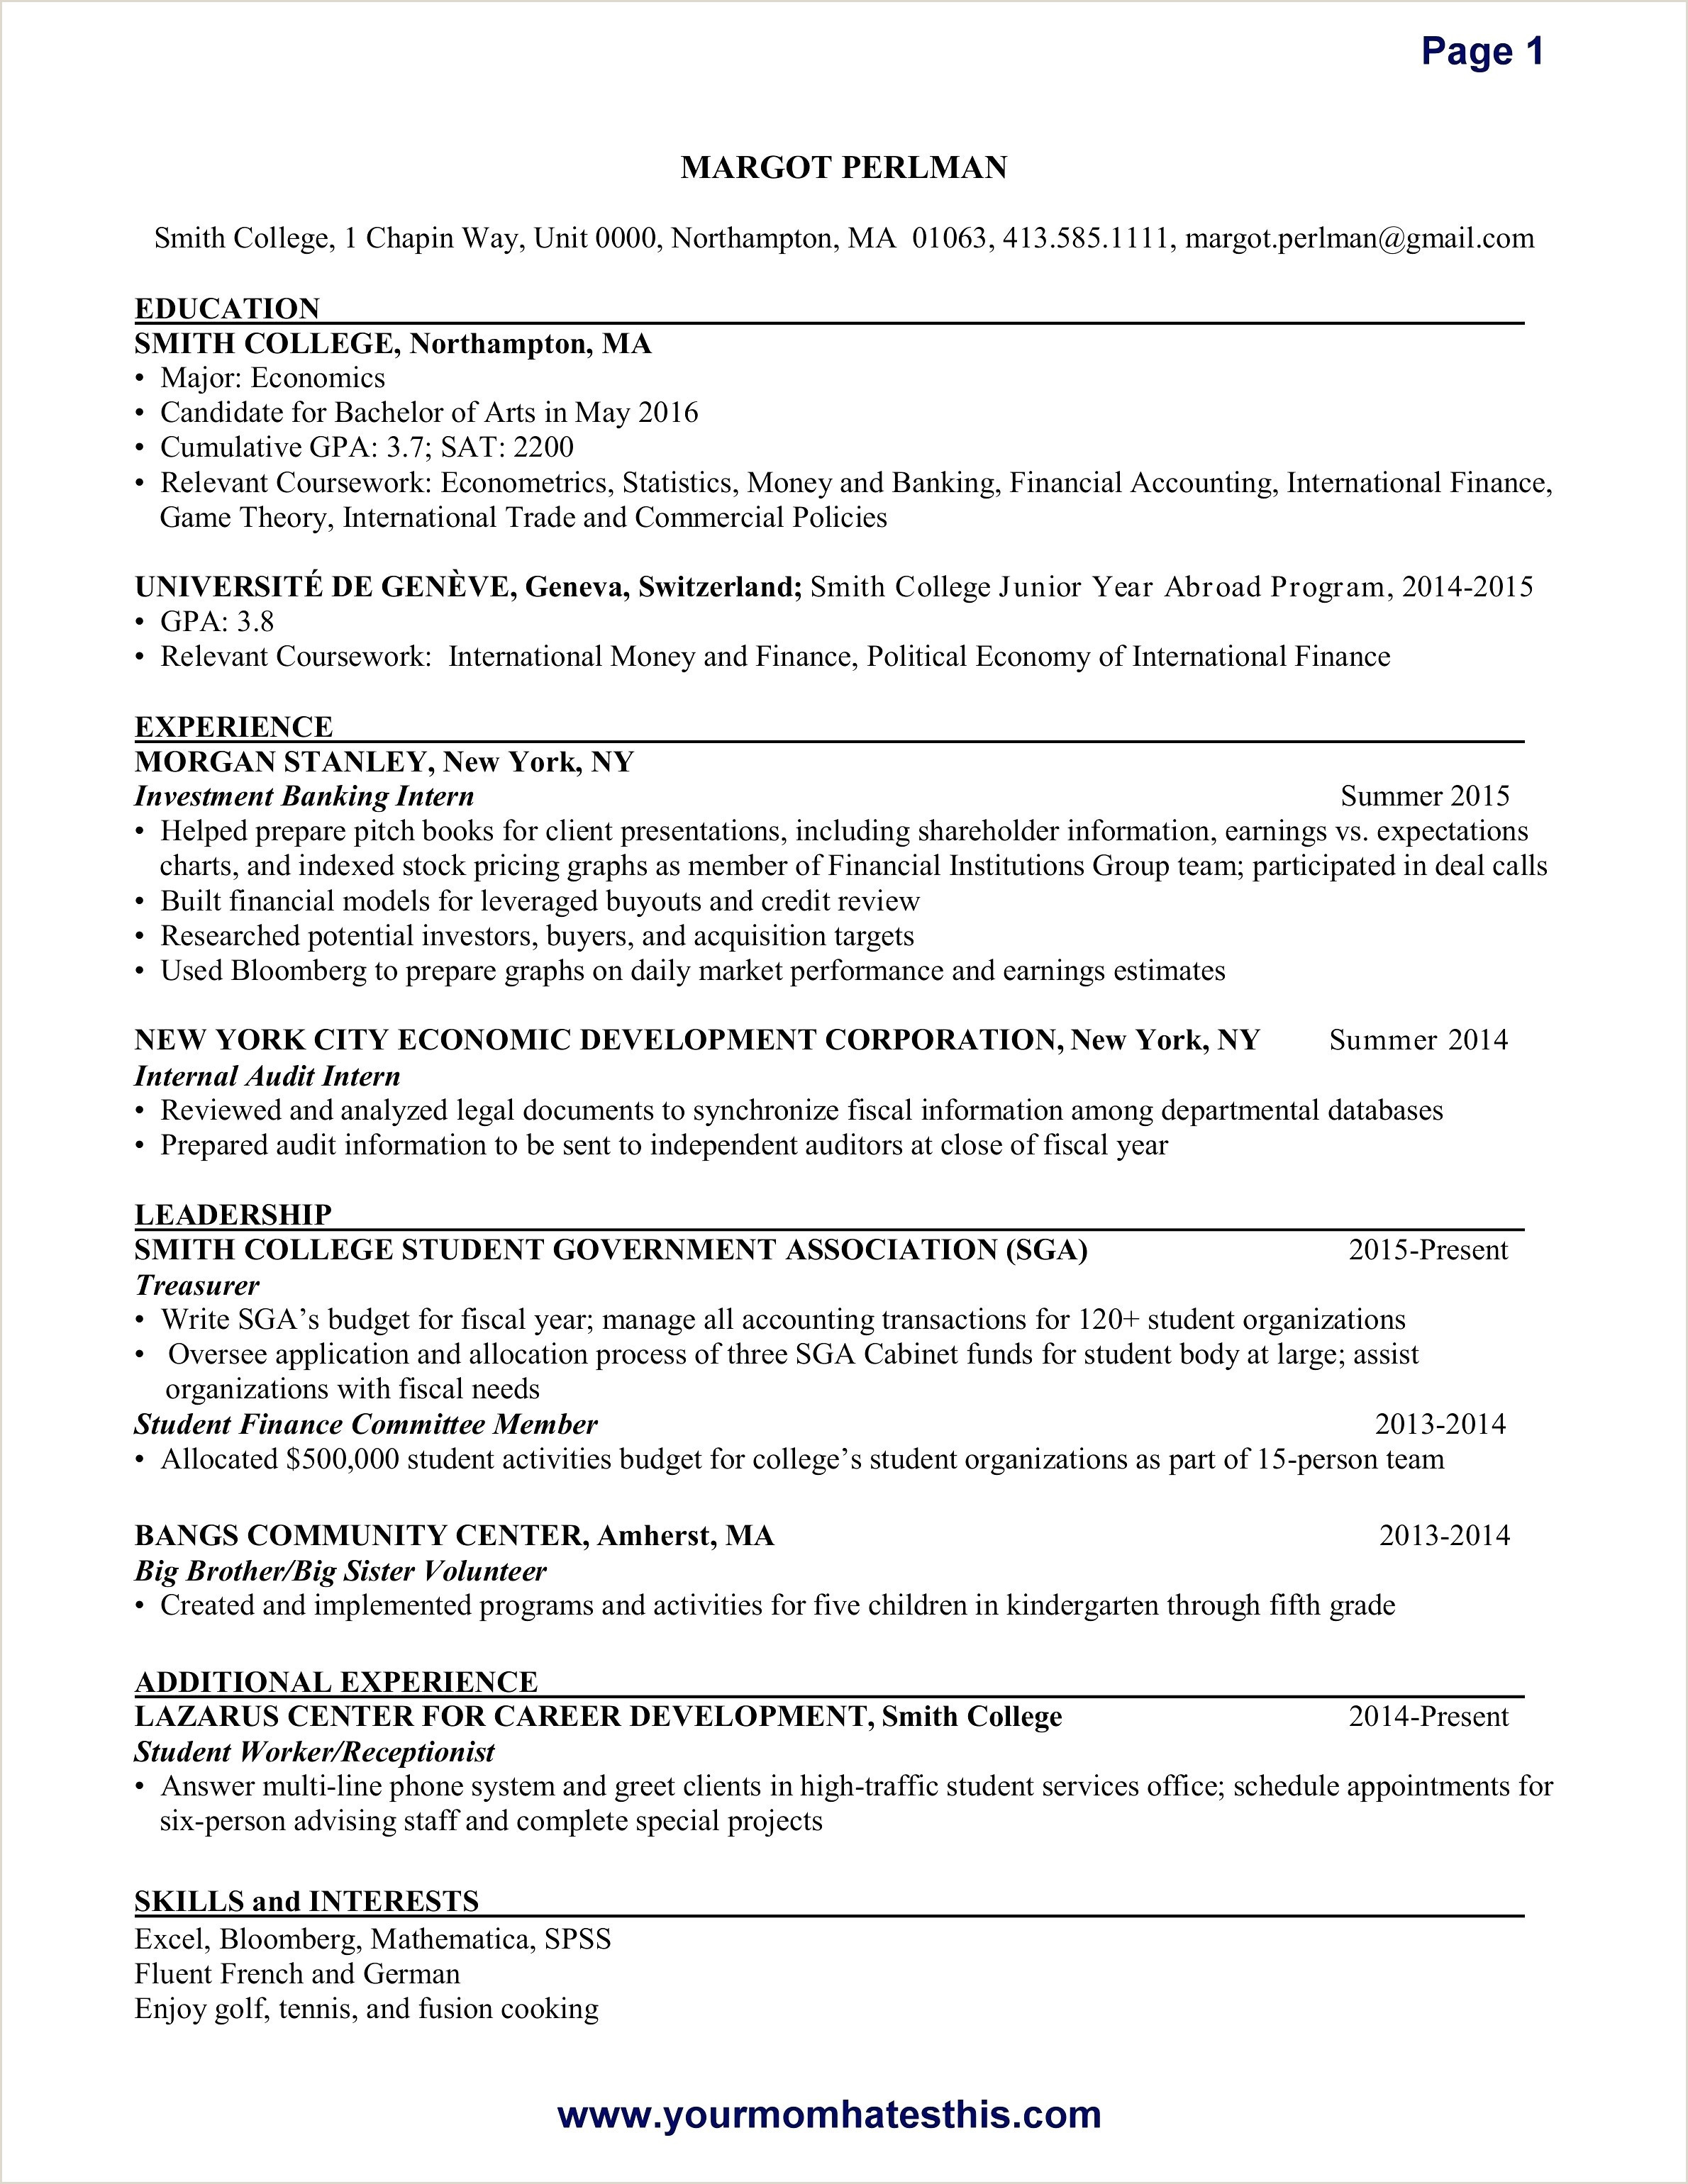 Dental assisting Cover Letter 11 Dental assistant Resume Examples Ideas